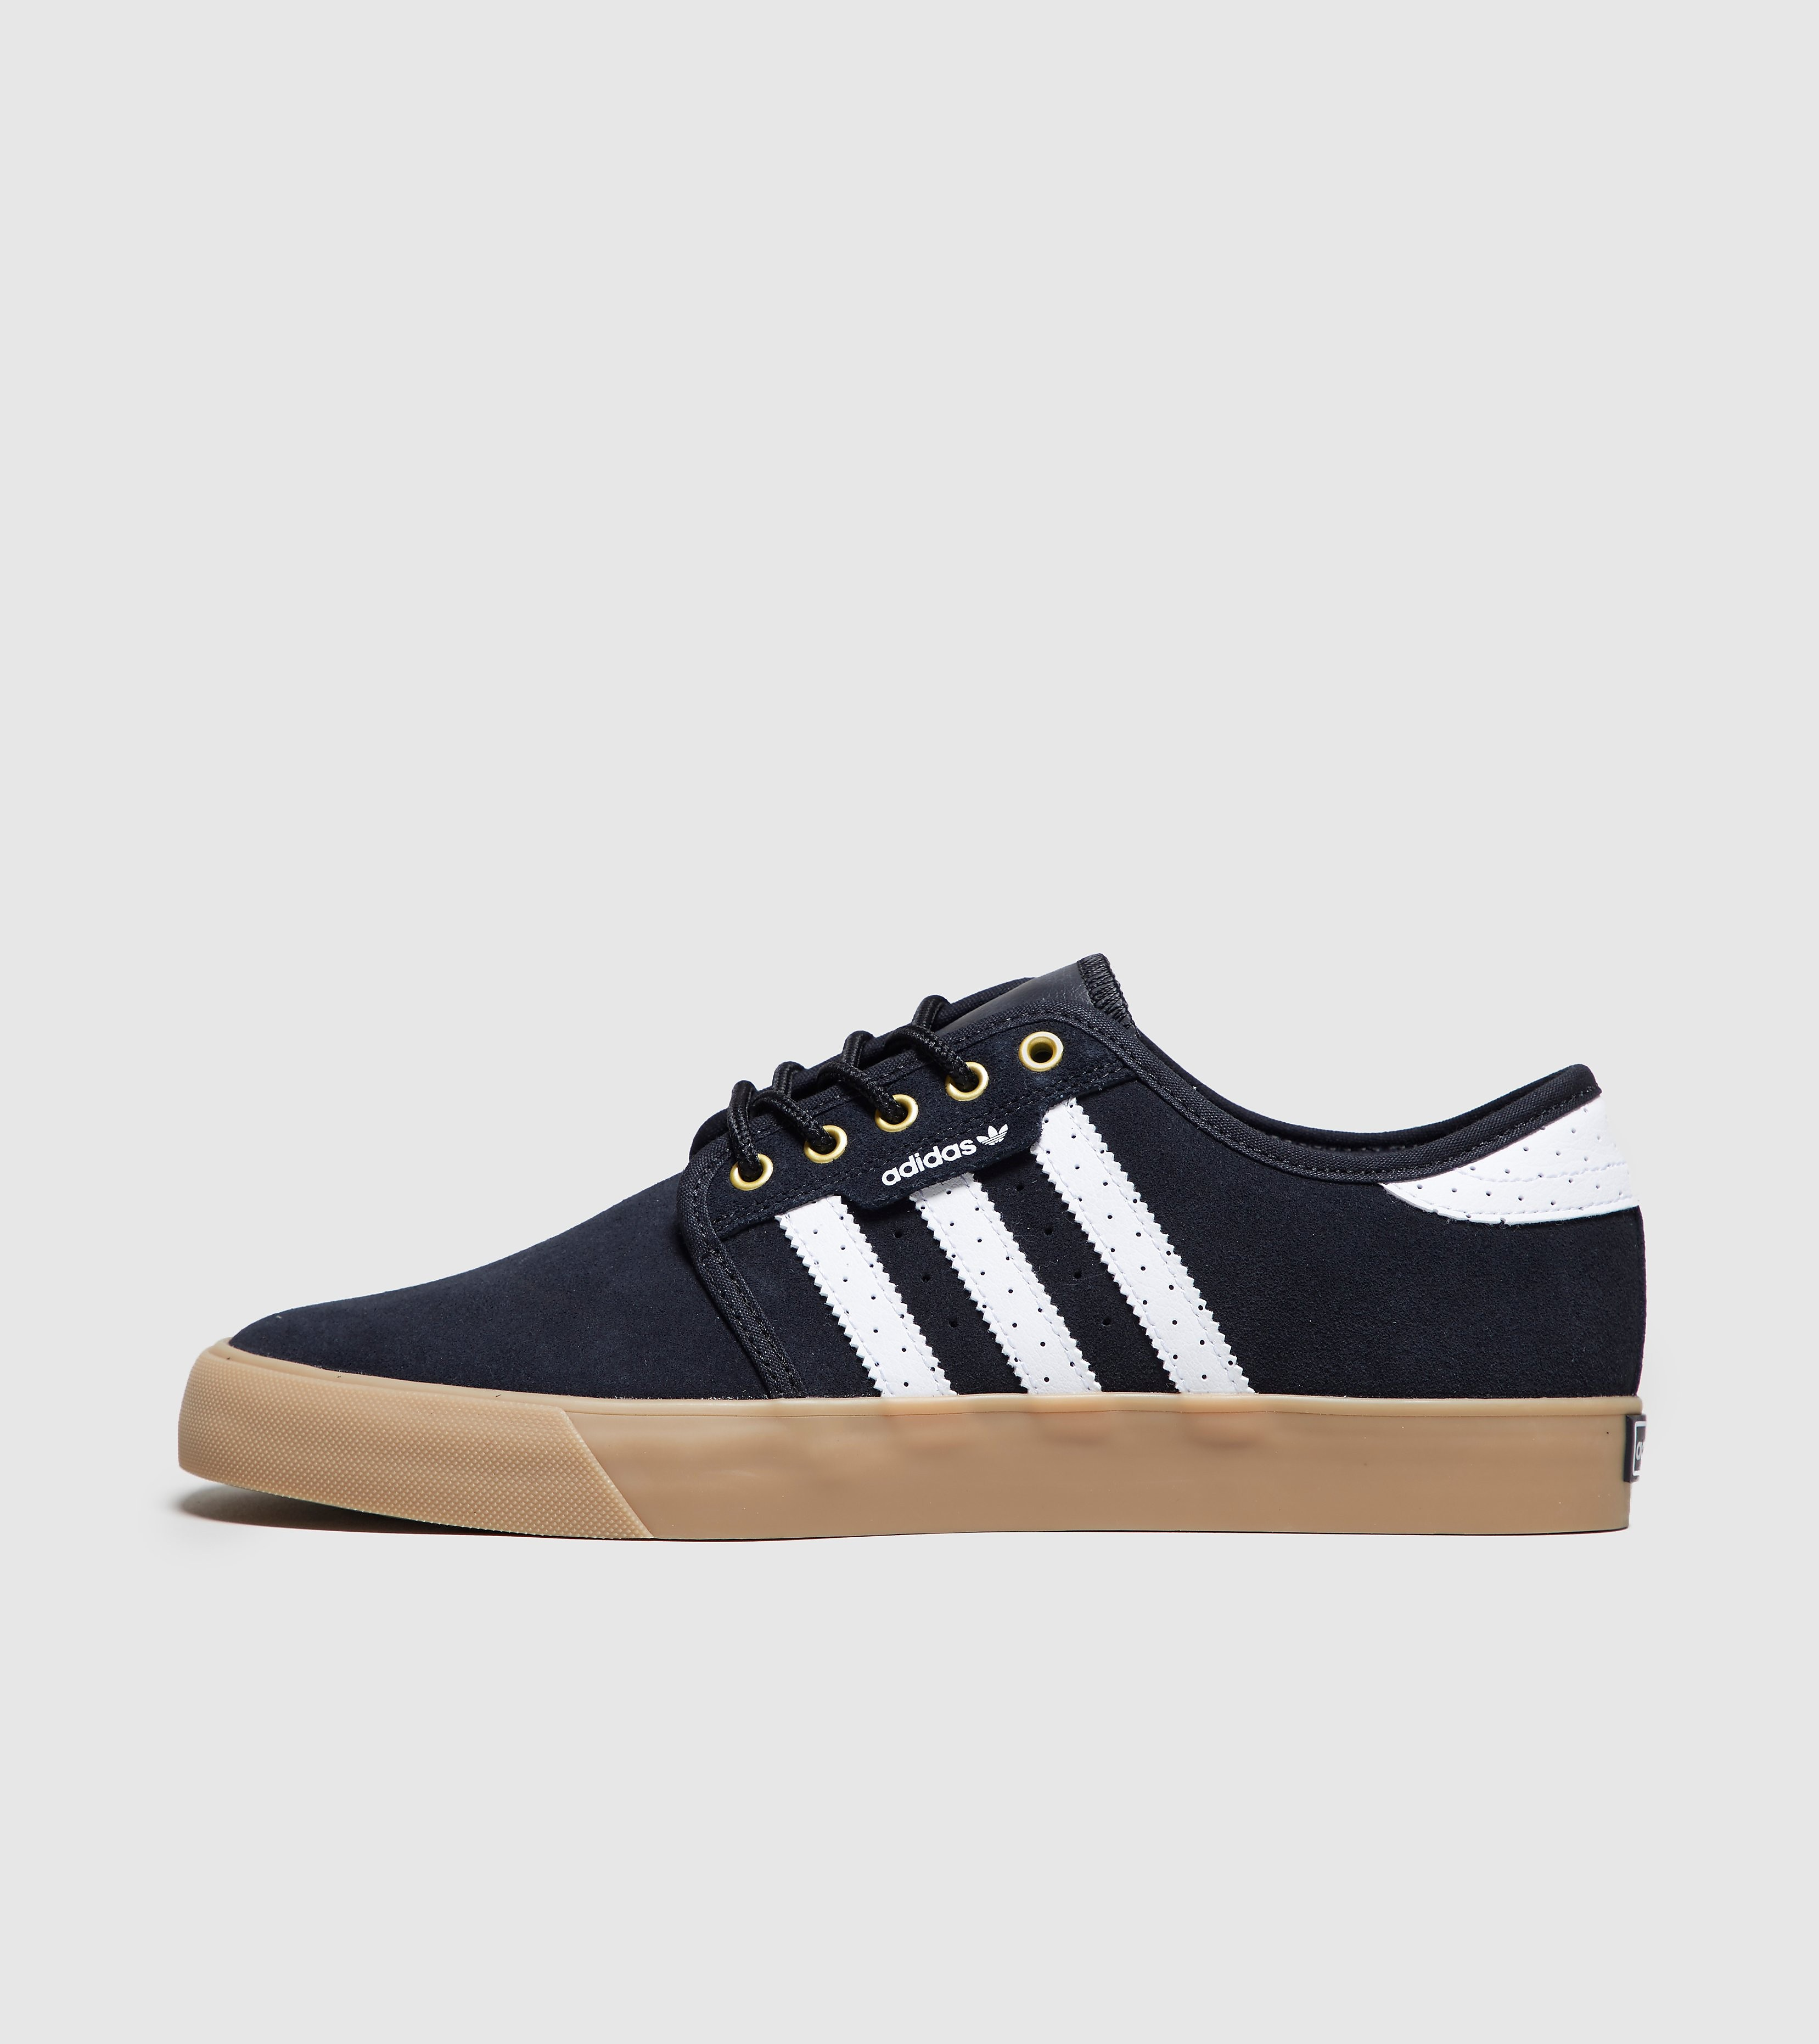 sneakers for cheap a9002 58525 Adidas Seeley  Características -   Sneakitup